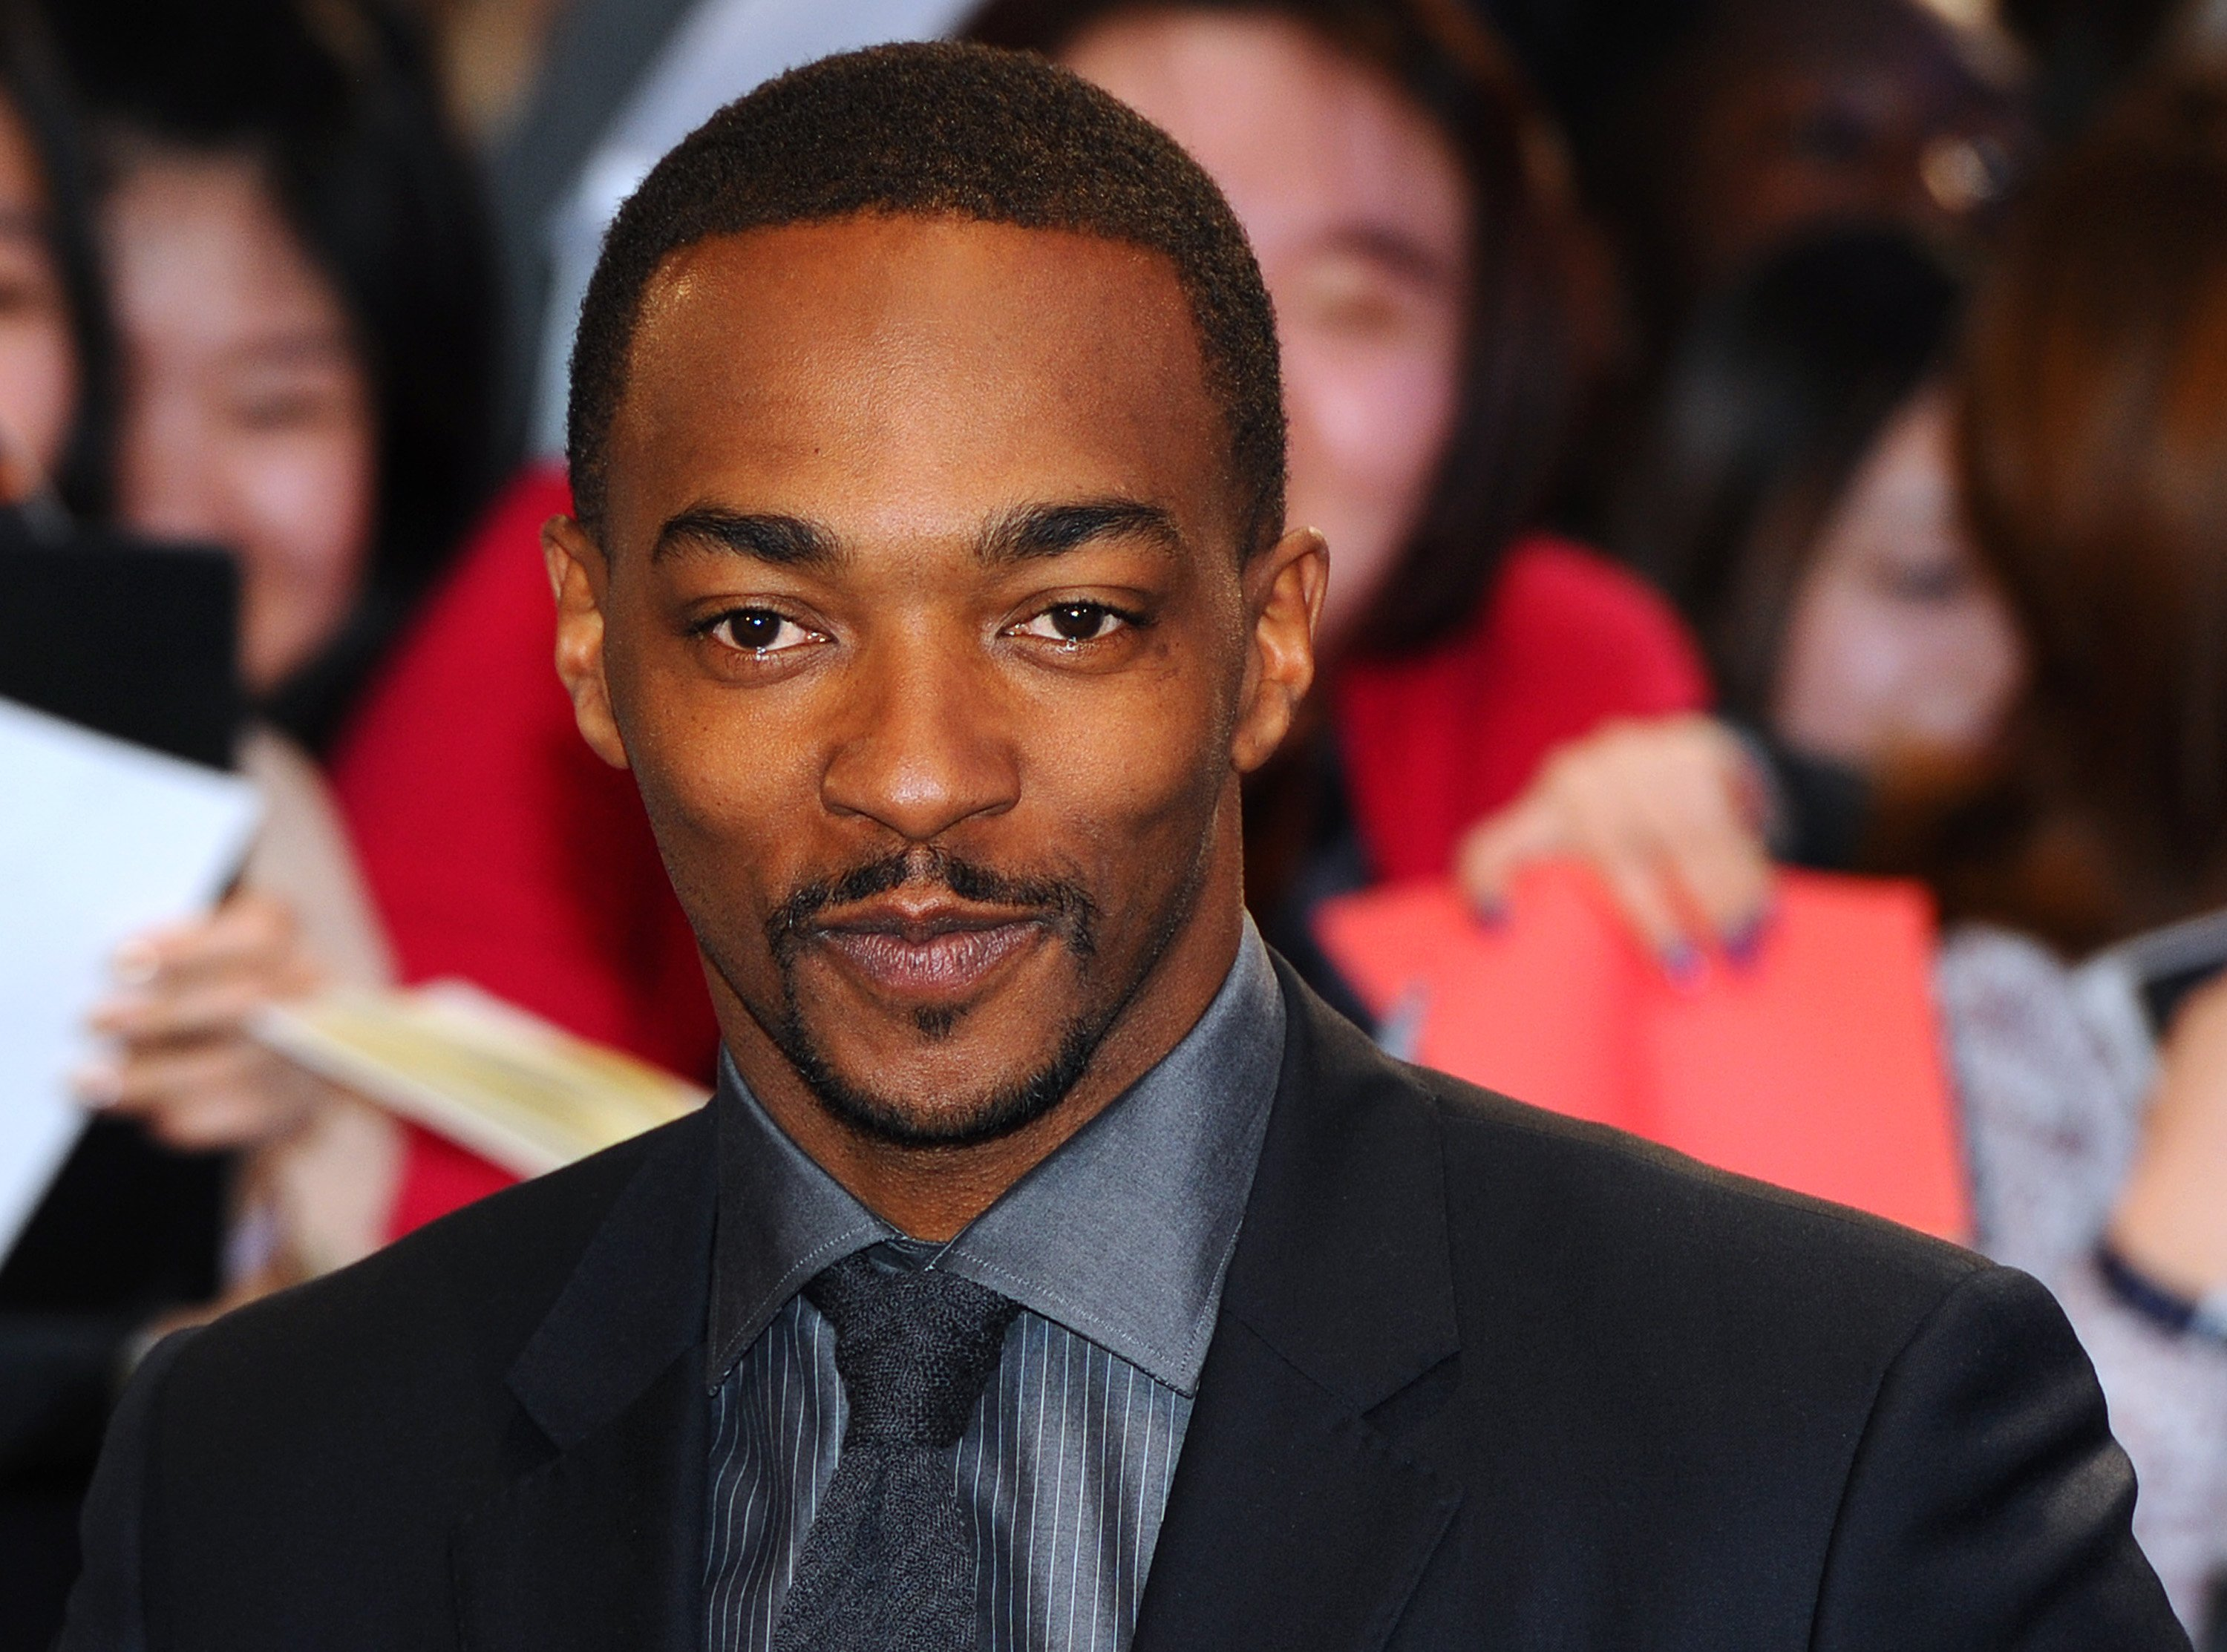 """Anthony Mackie at the """"Captain America: The Winter Soldier"""" premiere at Westfield London on March 20, 2014 in London, England.   Source: Getty Images"""